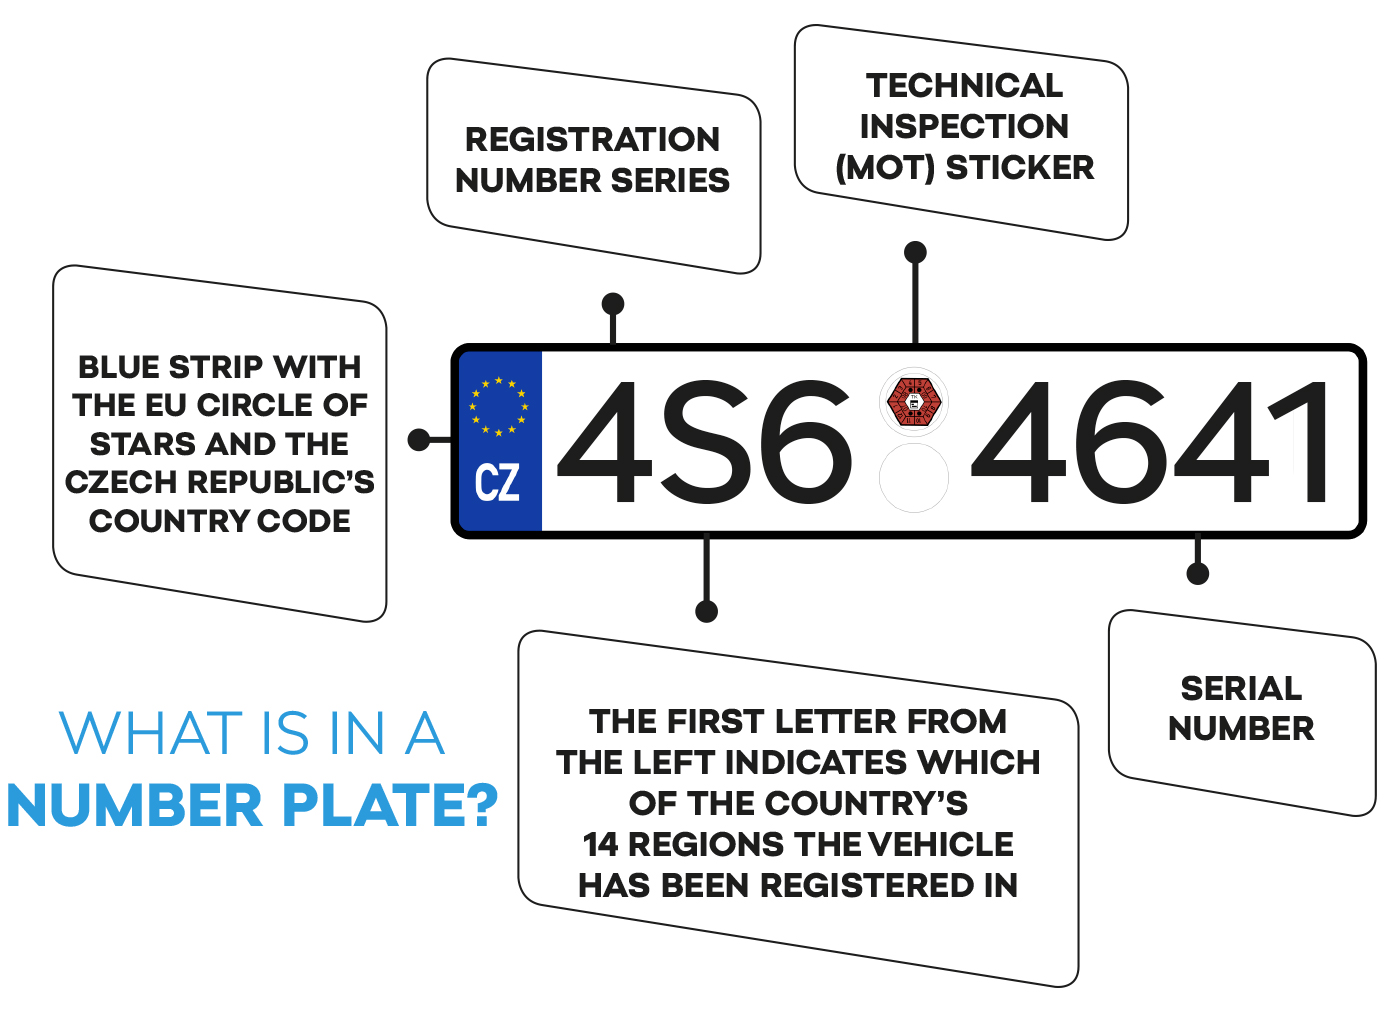 What information is in a number plate?